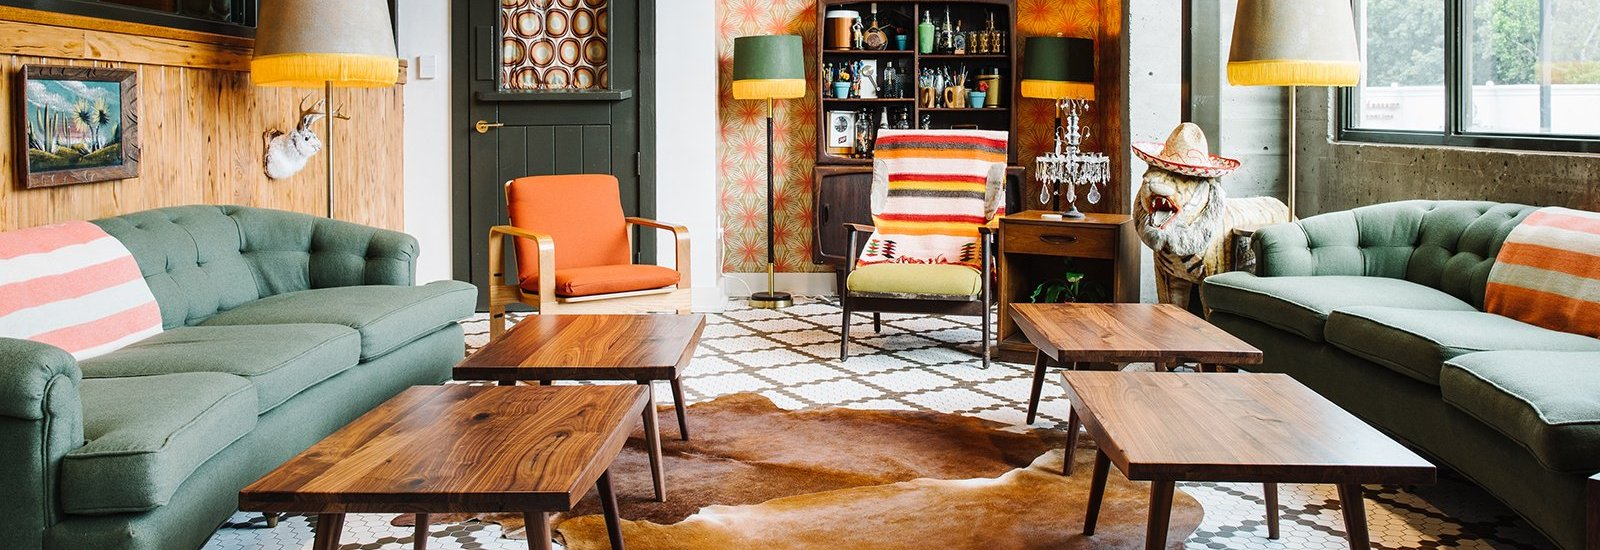 Modern-Vintage Interiors Inspiration From Elizabeth Ingram ...